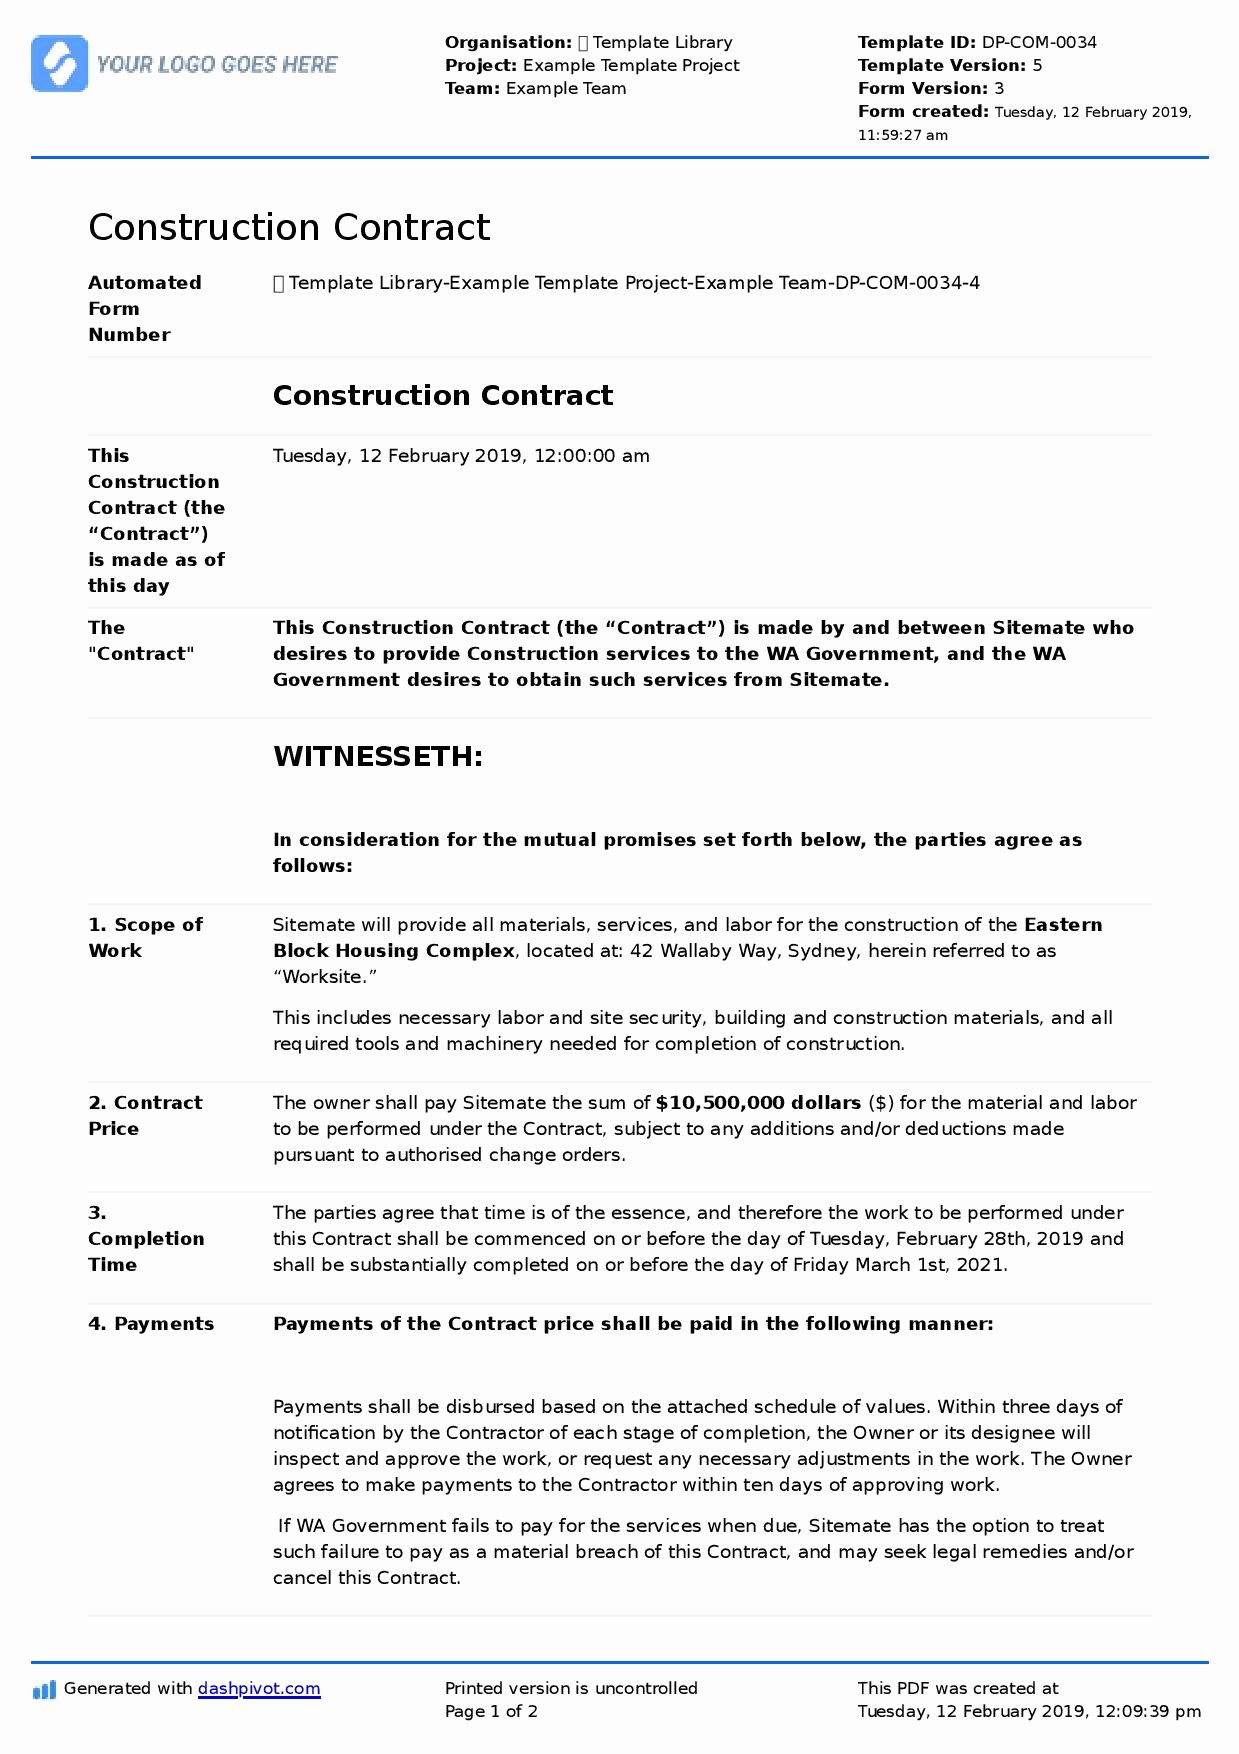 Construction Contract Template Word Lovely Construction Contract Sample Better Than Word and Pdf